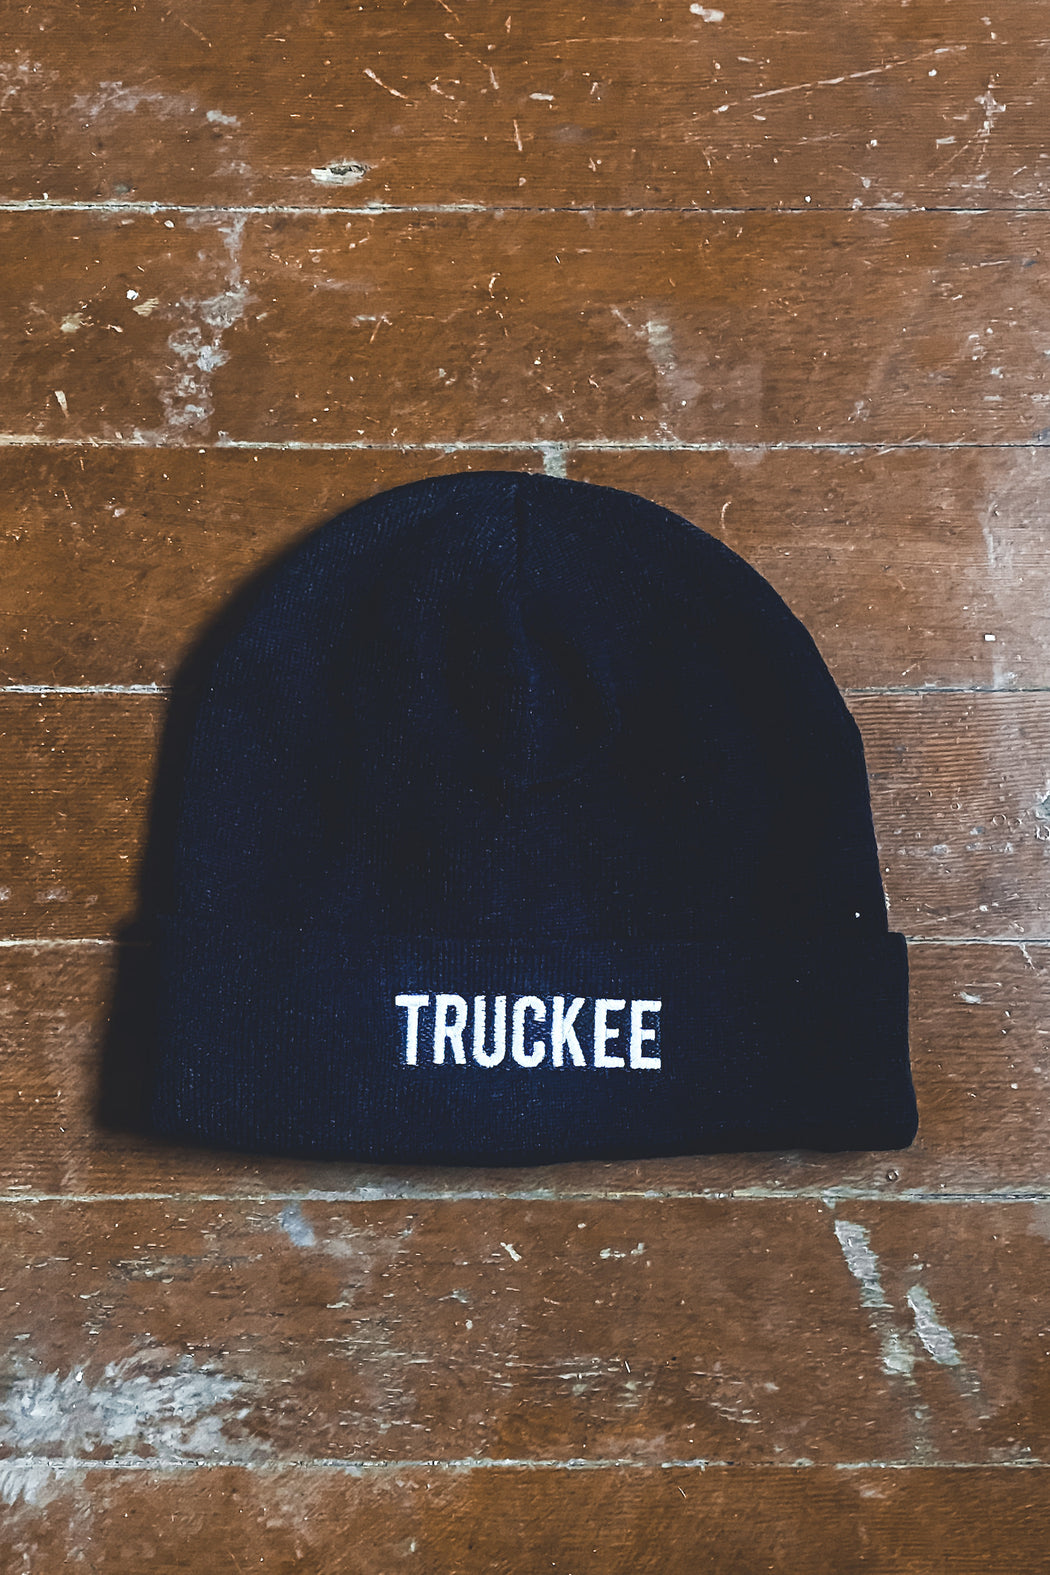 Tahoe Soul Truckee Embroidered Beanie in Black